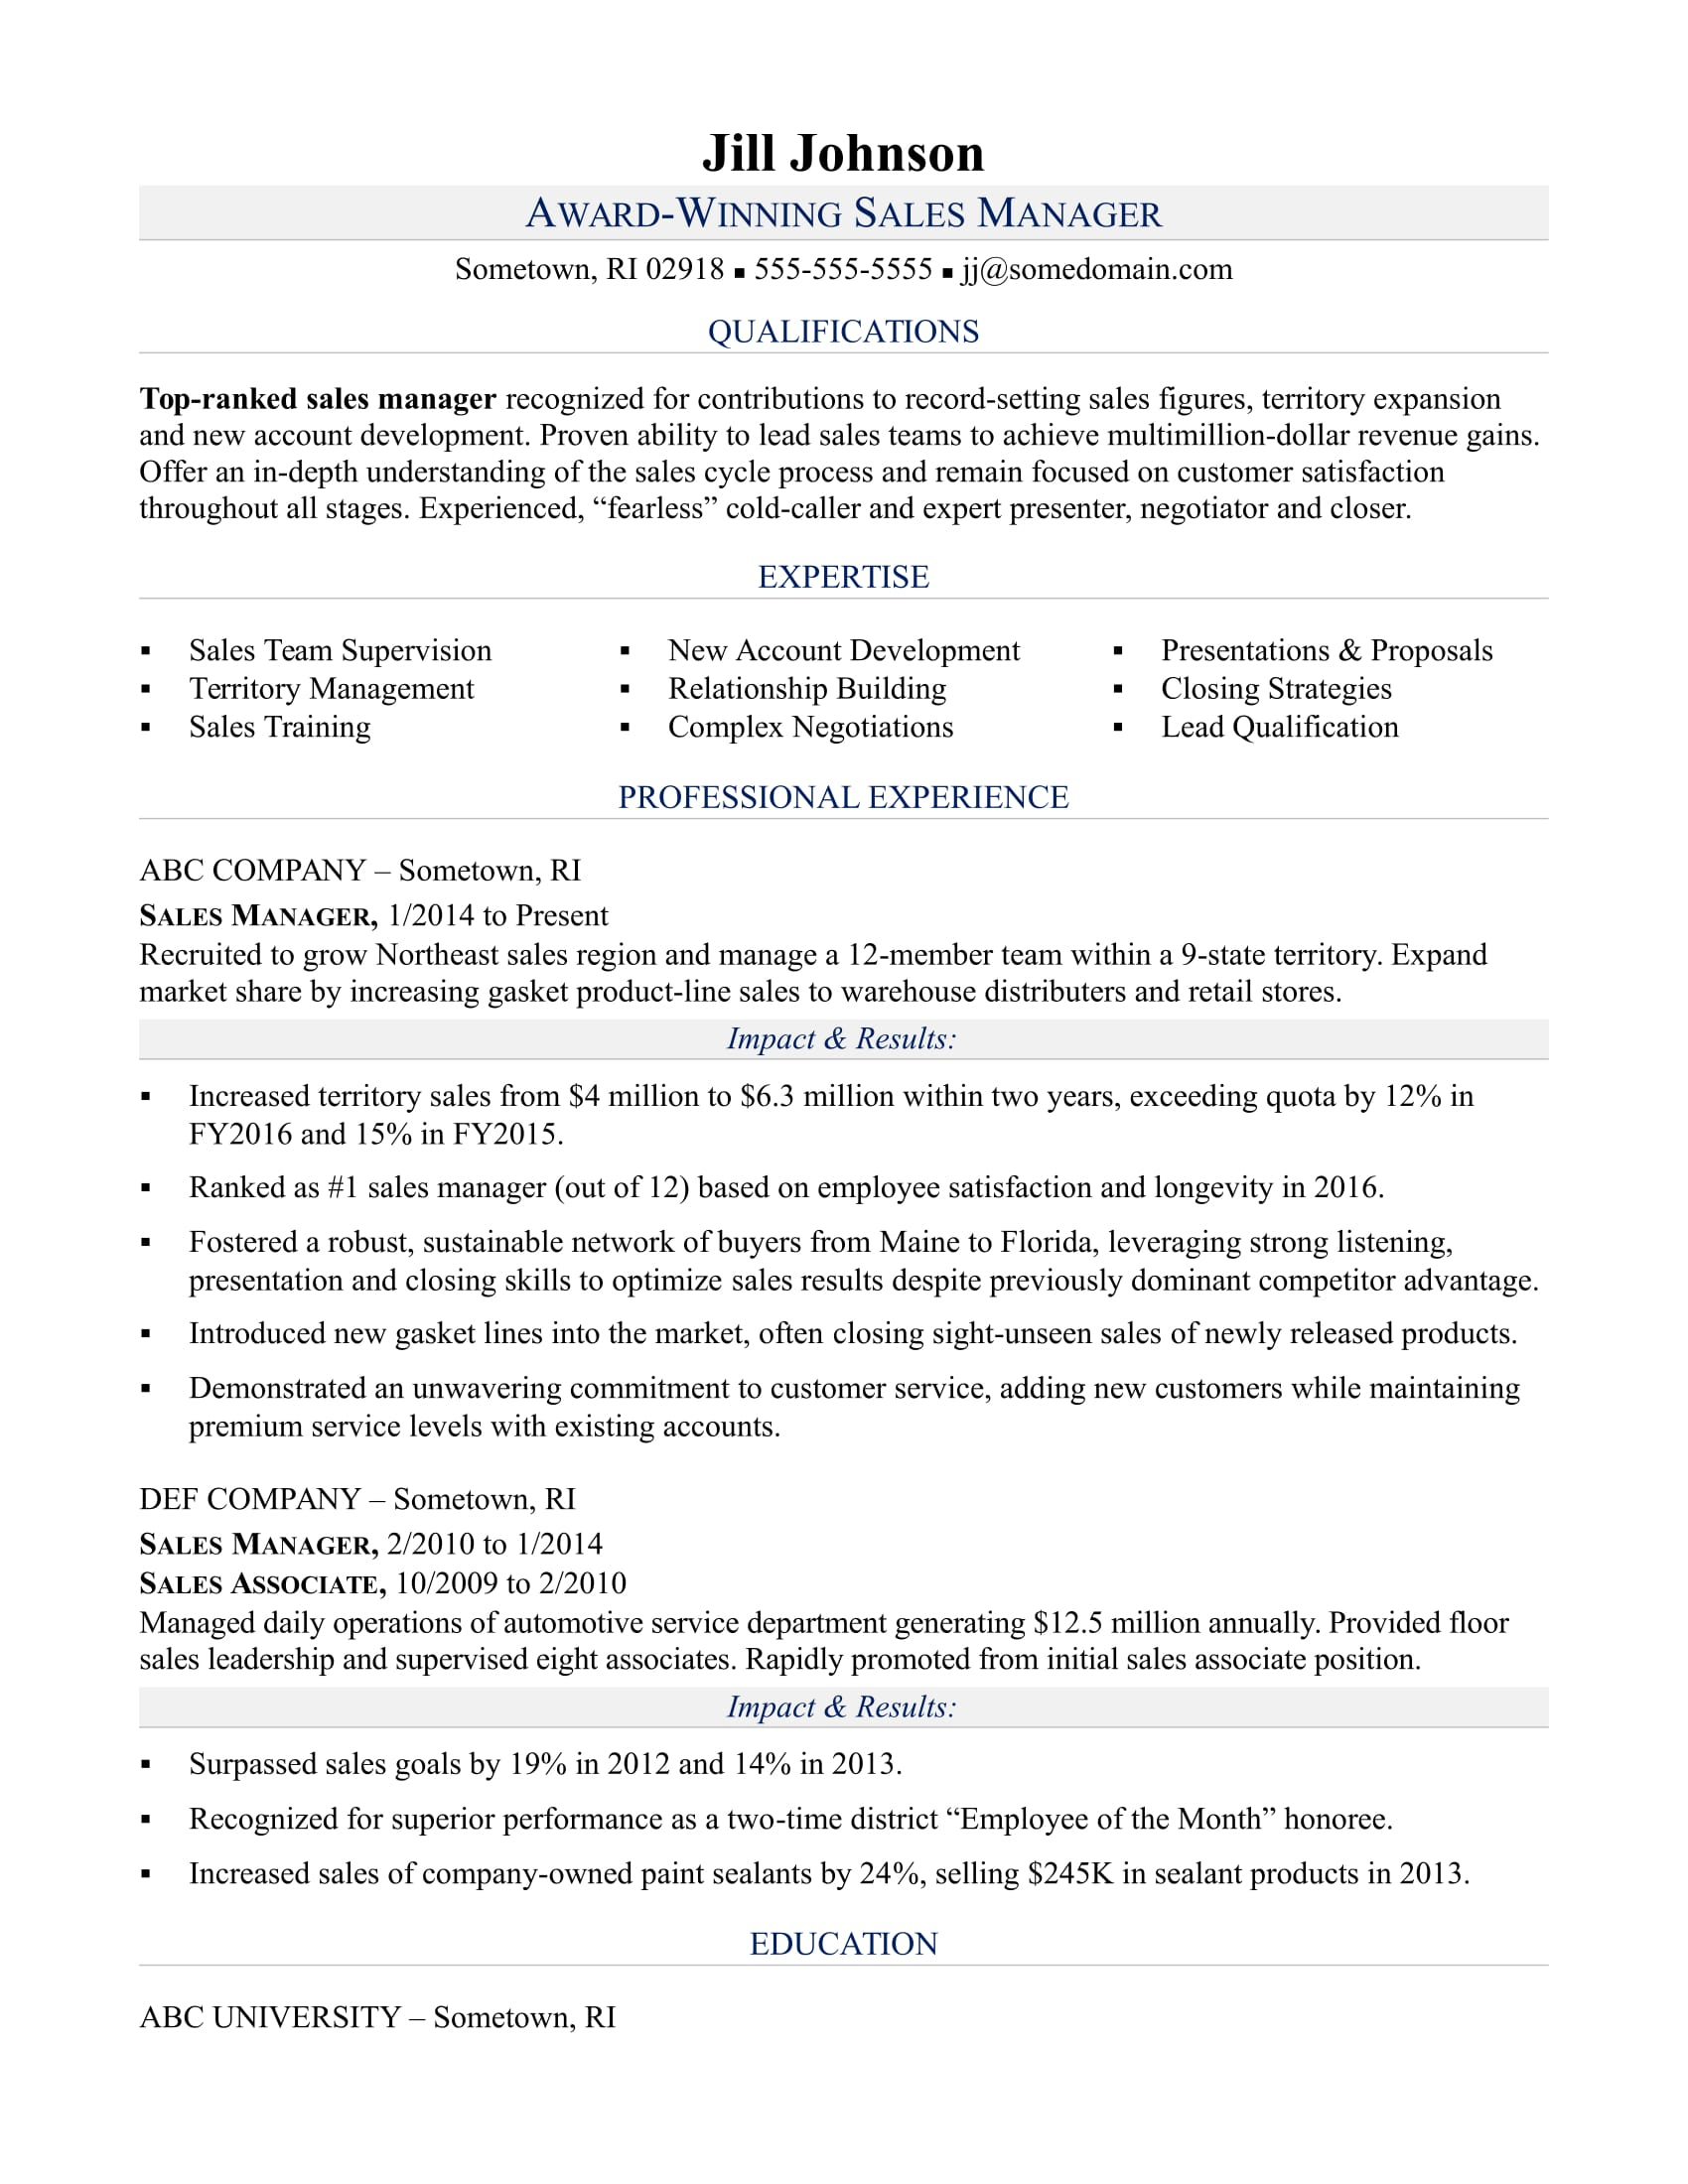 Sample Resume For A Sales Manager  Monster Com Resume